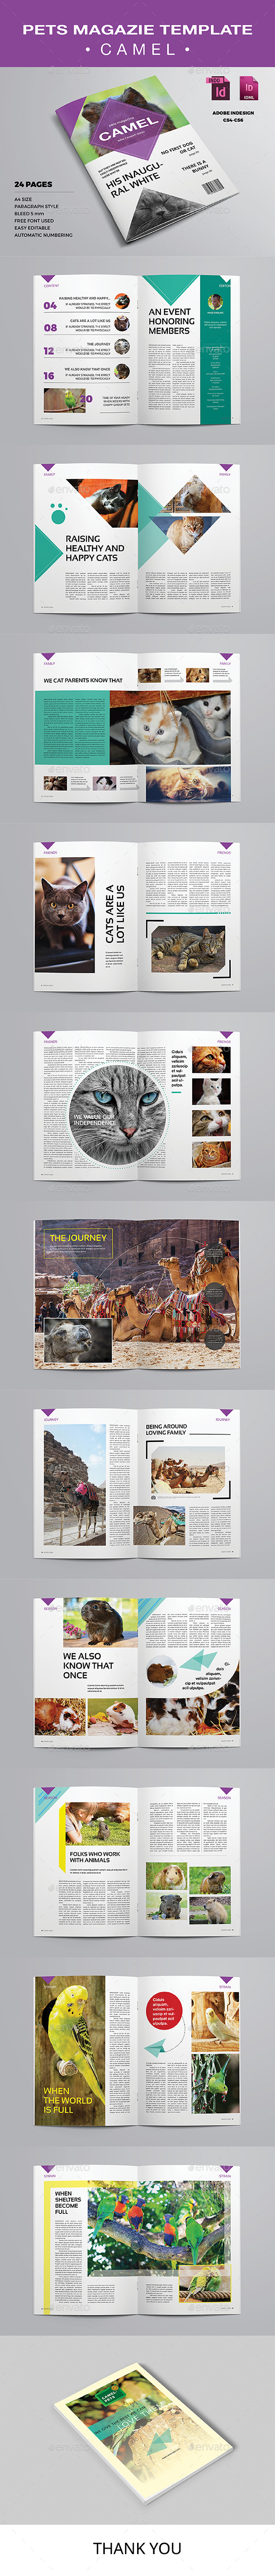 Pets Magazine Template - Camel - Magazines Print Templates